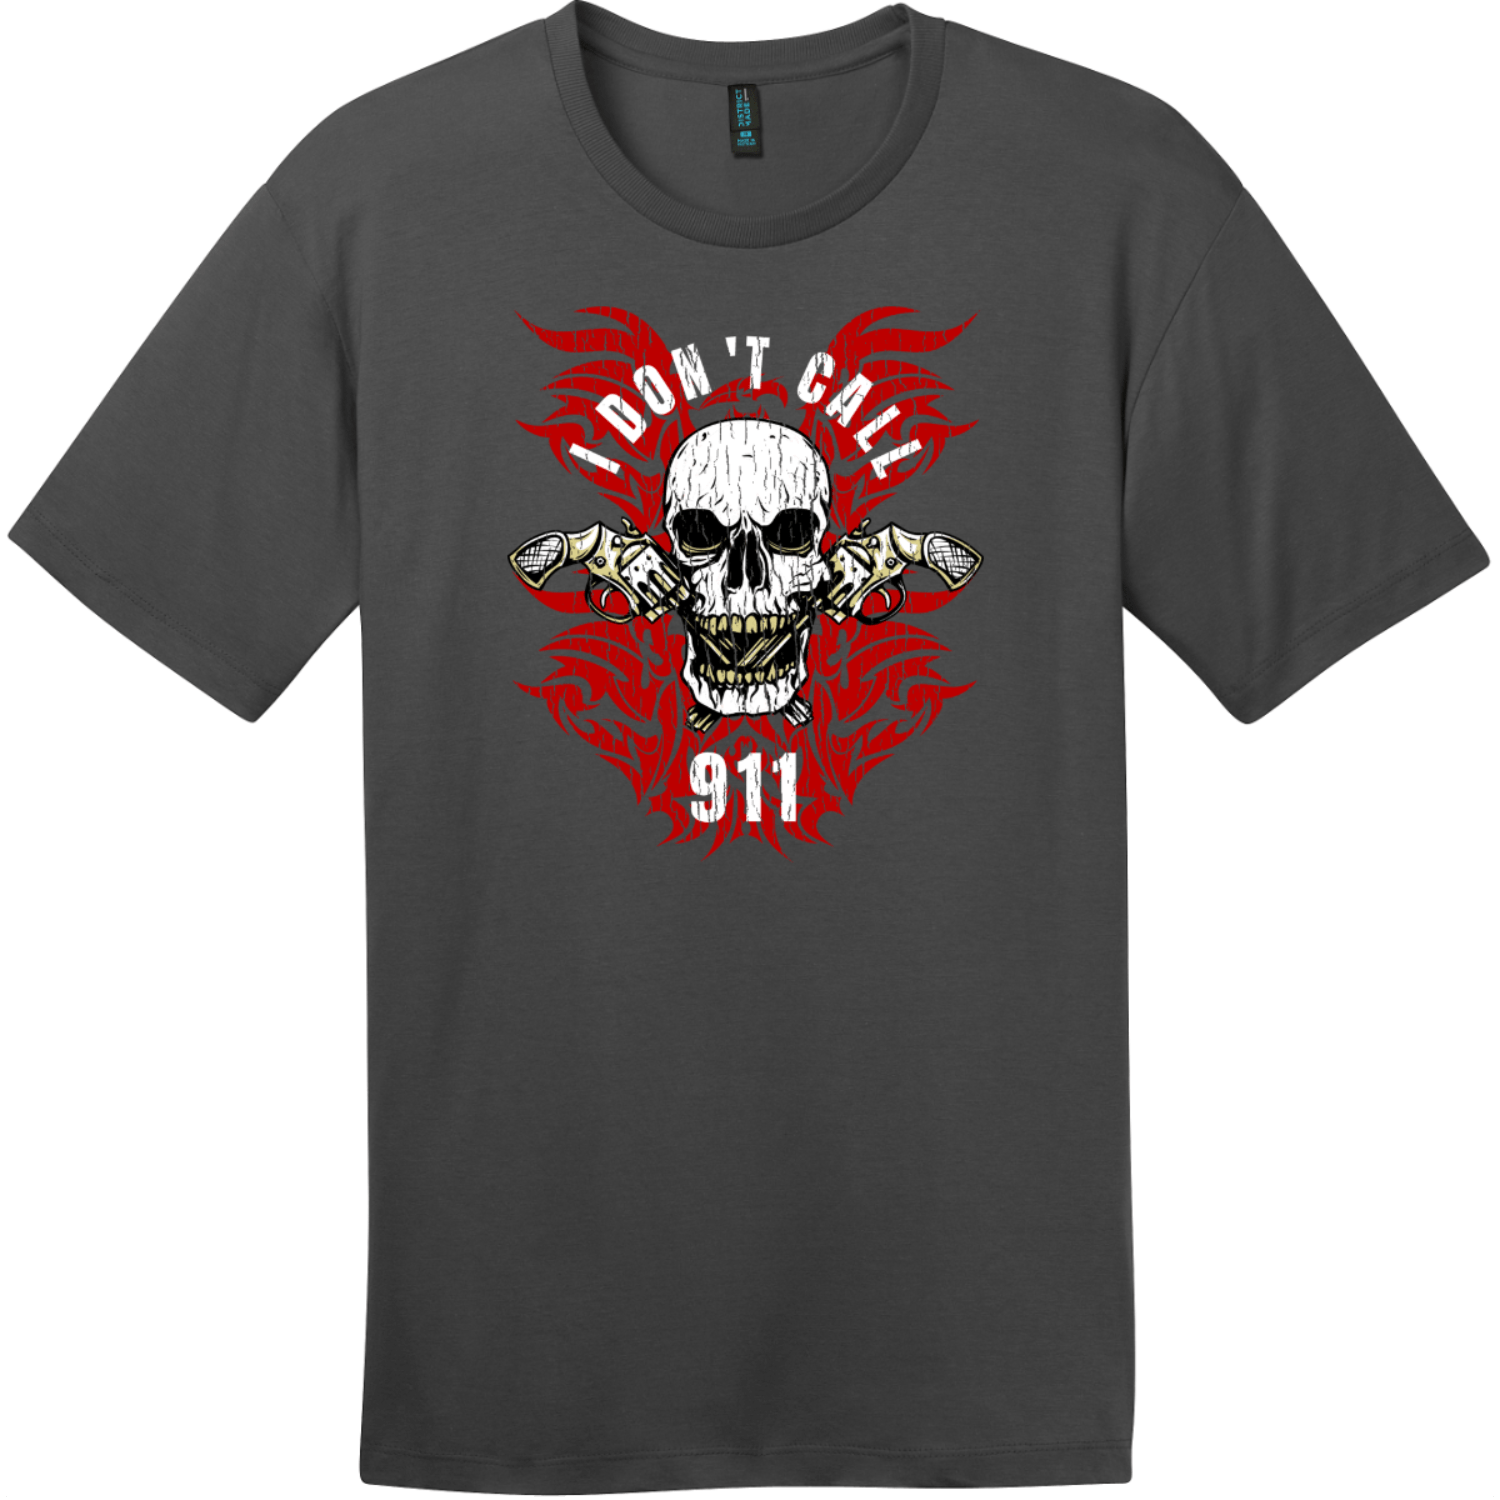 I Dont Call 911 T-Shirt Charcoal District Perfect Weight Tee DT104